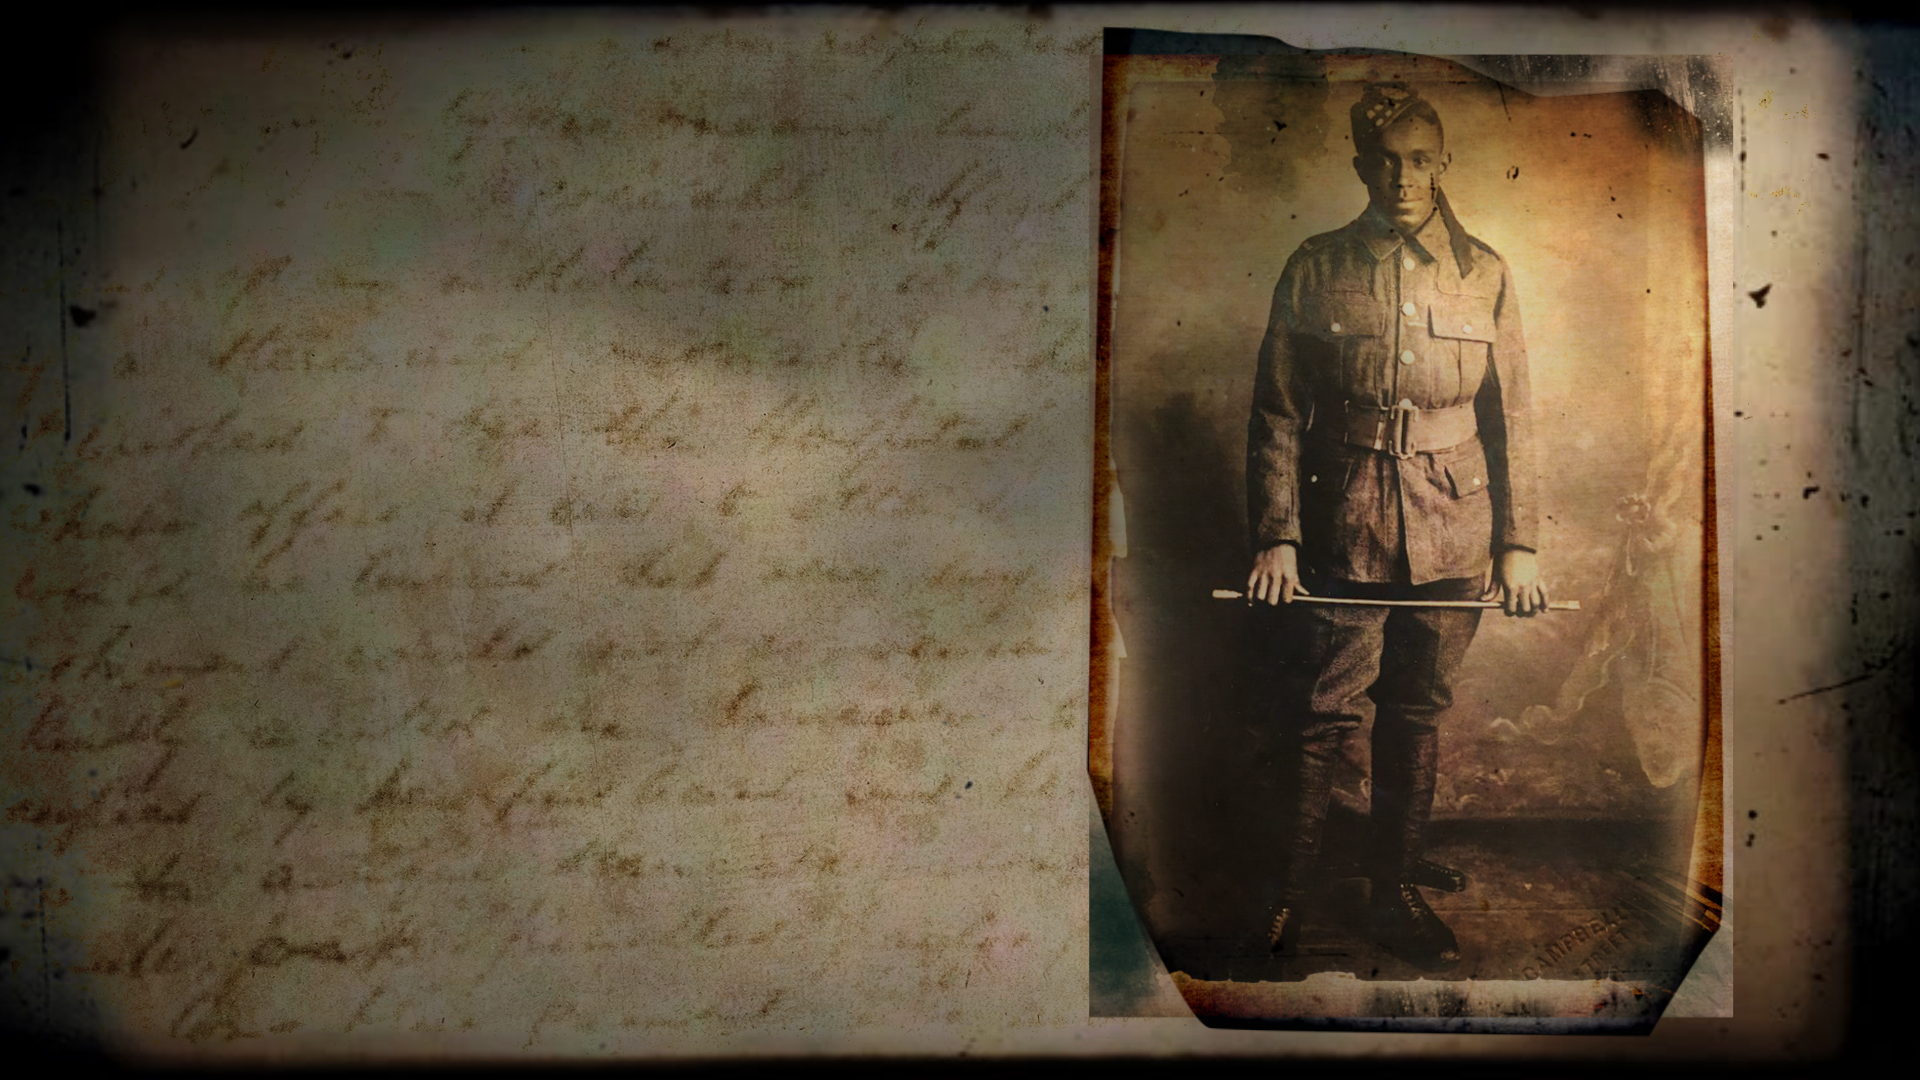 SCOTTISH SOLDIER: A LOST DIARY OF WW1